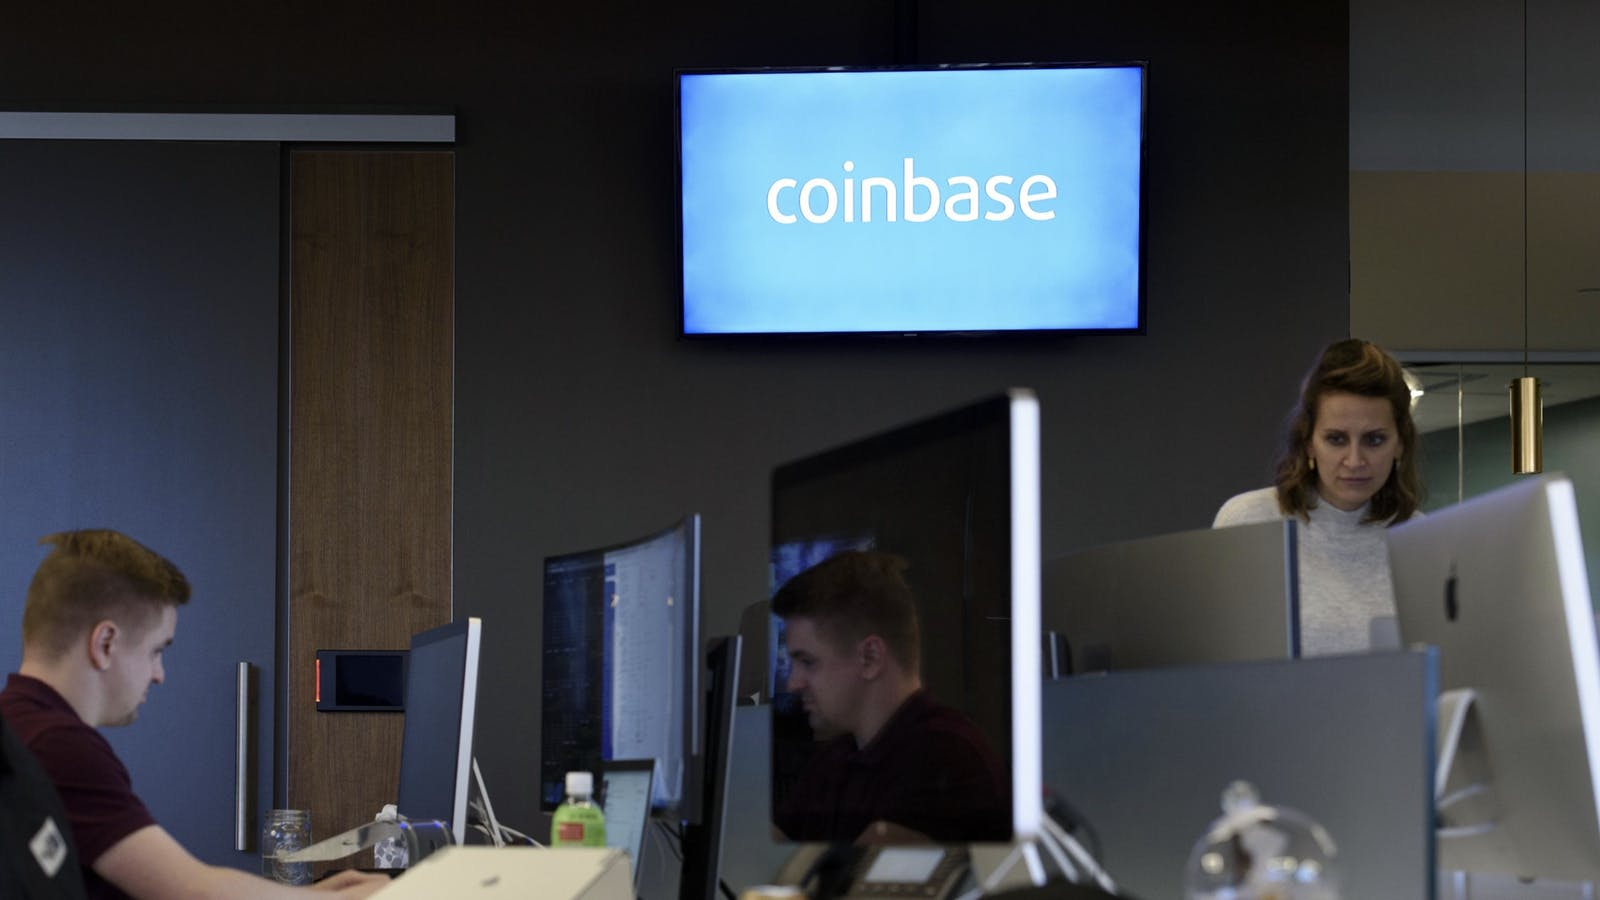 Inside Coinbase's San Francisco office. Photo by Bloomberg